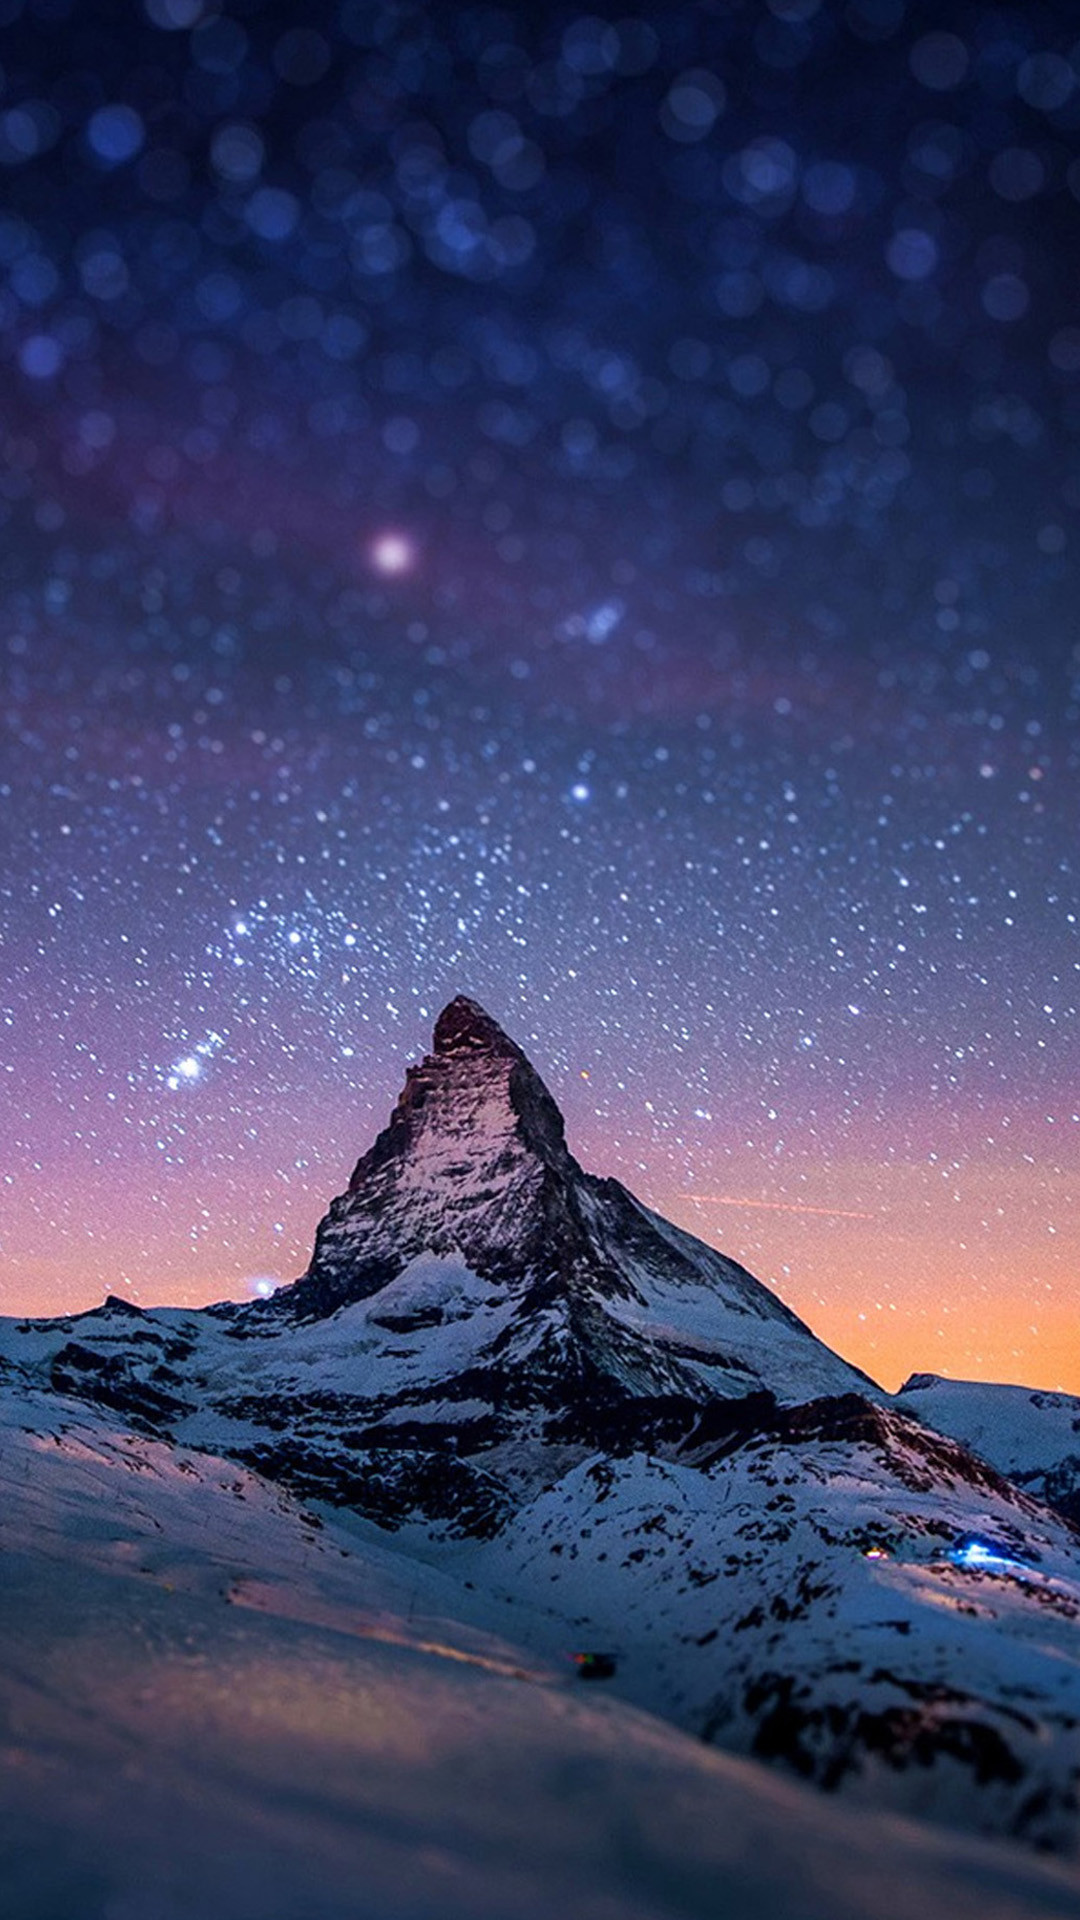 Sony Xperia Z2 Wallpapers HD, Xperia Z and Xperia Z1 Wallpapers .